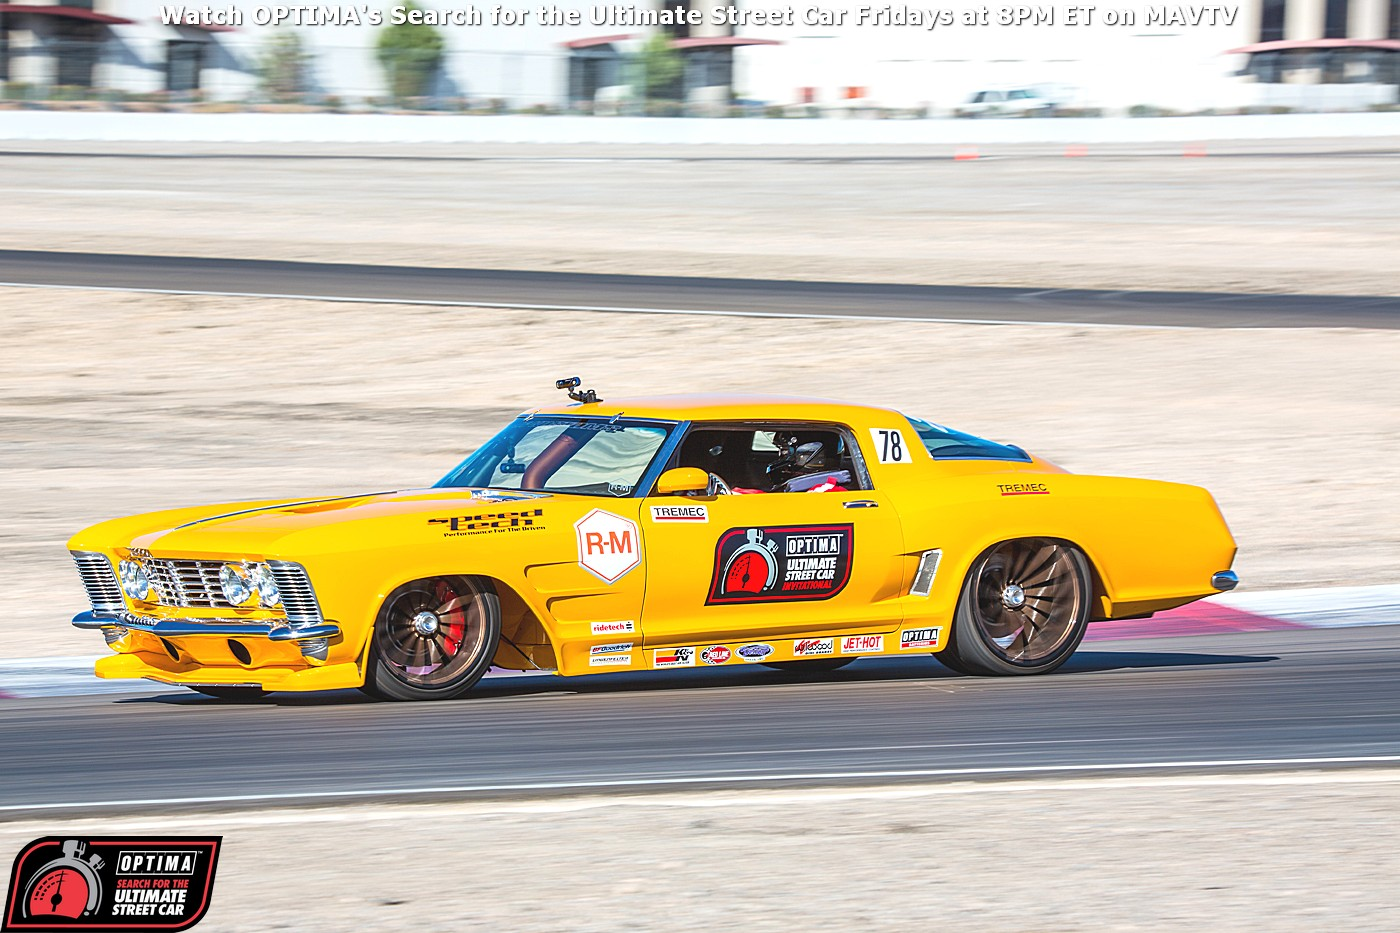 JF-Launier-1964-Buick-Riviera-BFGoodrich-Hot-Lap-Challenge-2014-OPTIMA-Ultimate-Street-Car-Invitational_143.jpg